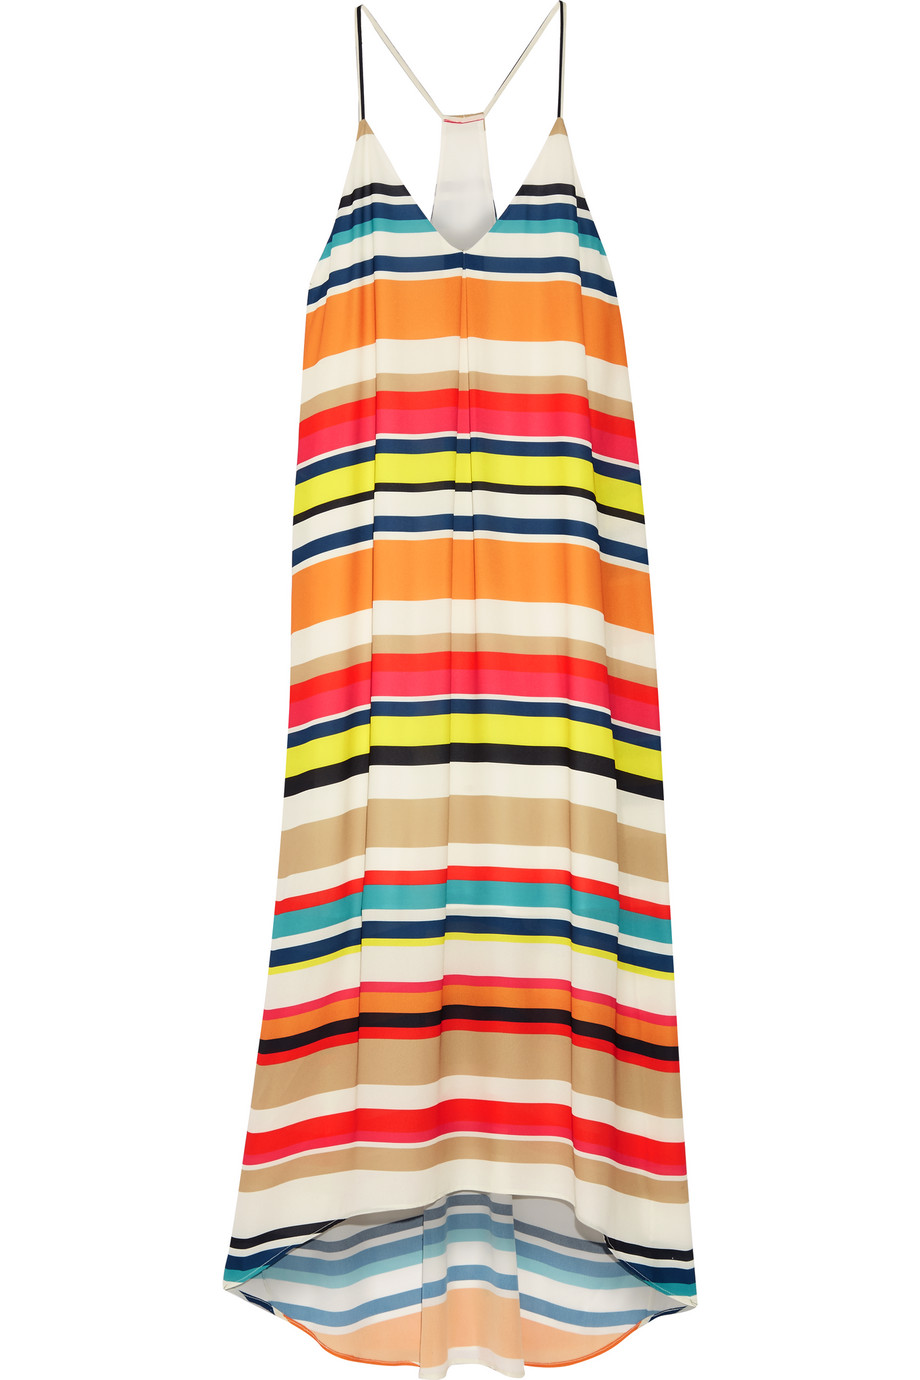 Alice + Olivia Cortes Striped Georgette Midi Dress, White/Orange, Women's